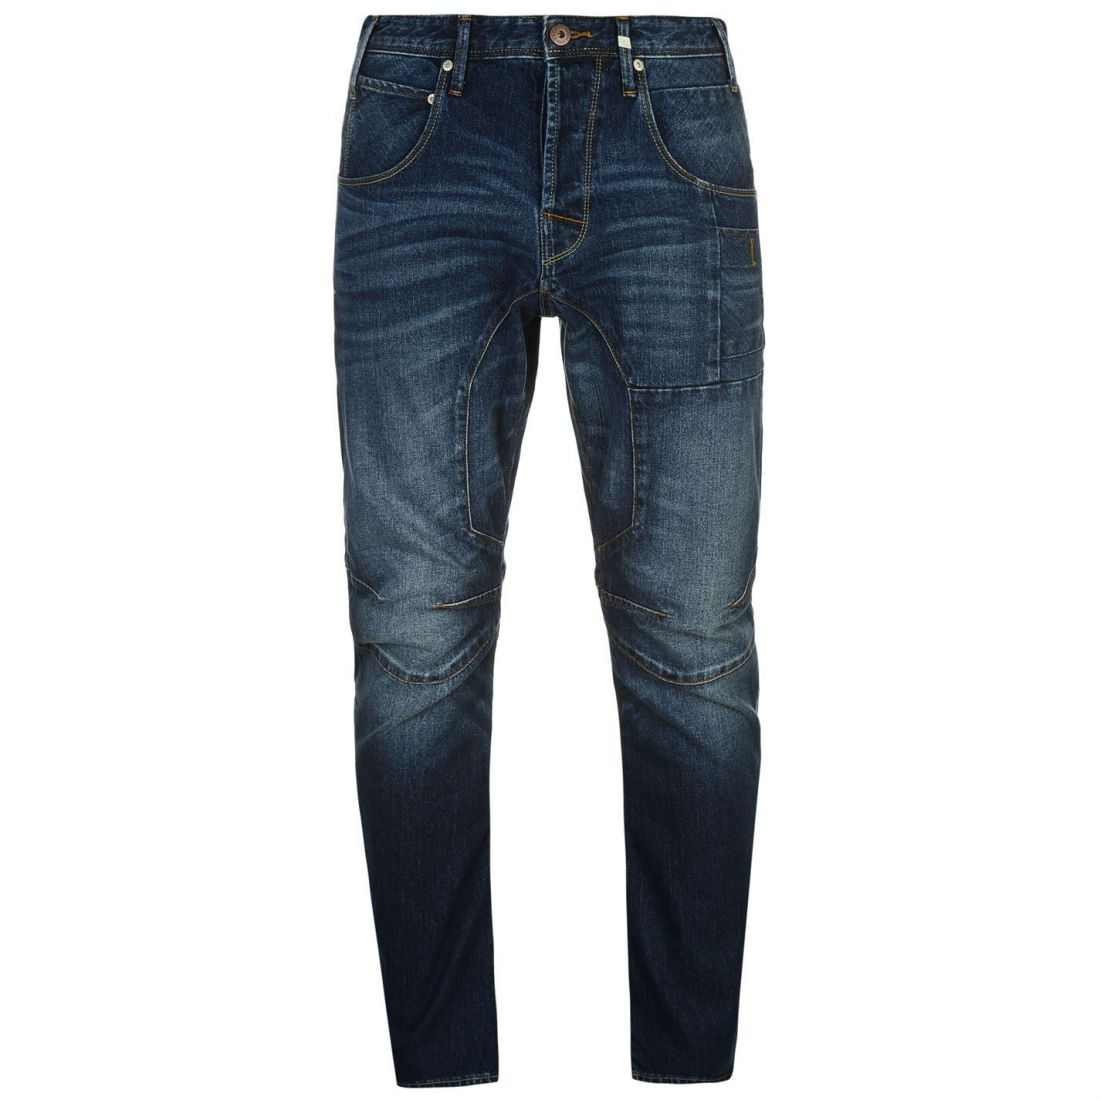 fff130032495a Details about Jack and Jones Men Intelligence Anti Fit Stan Osaka Jeans  Pants Trousers Bottoms